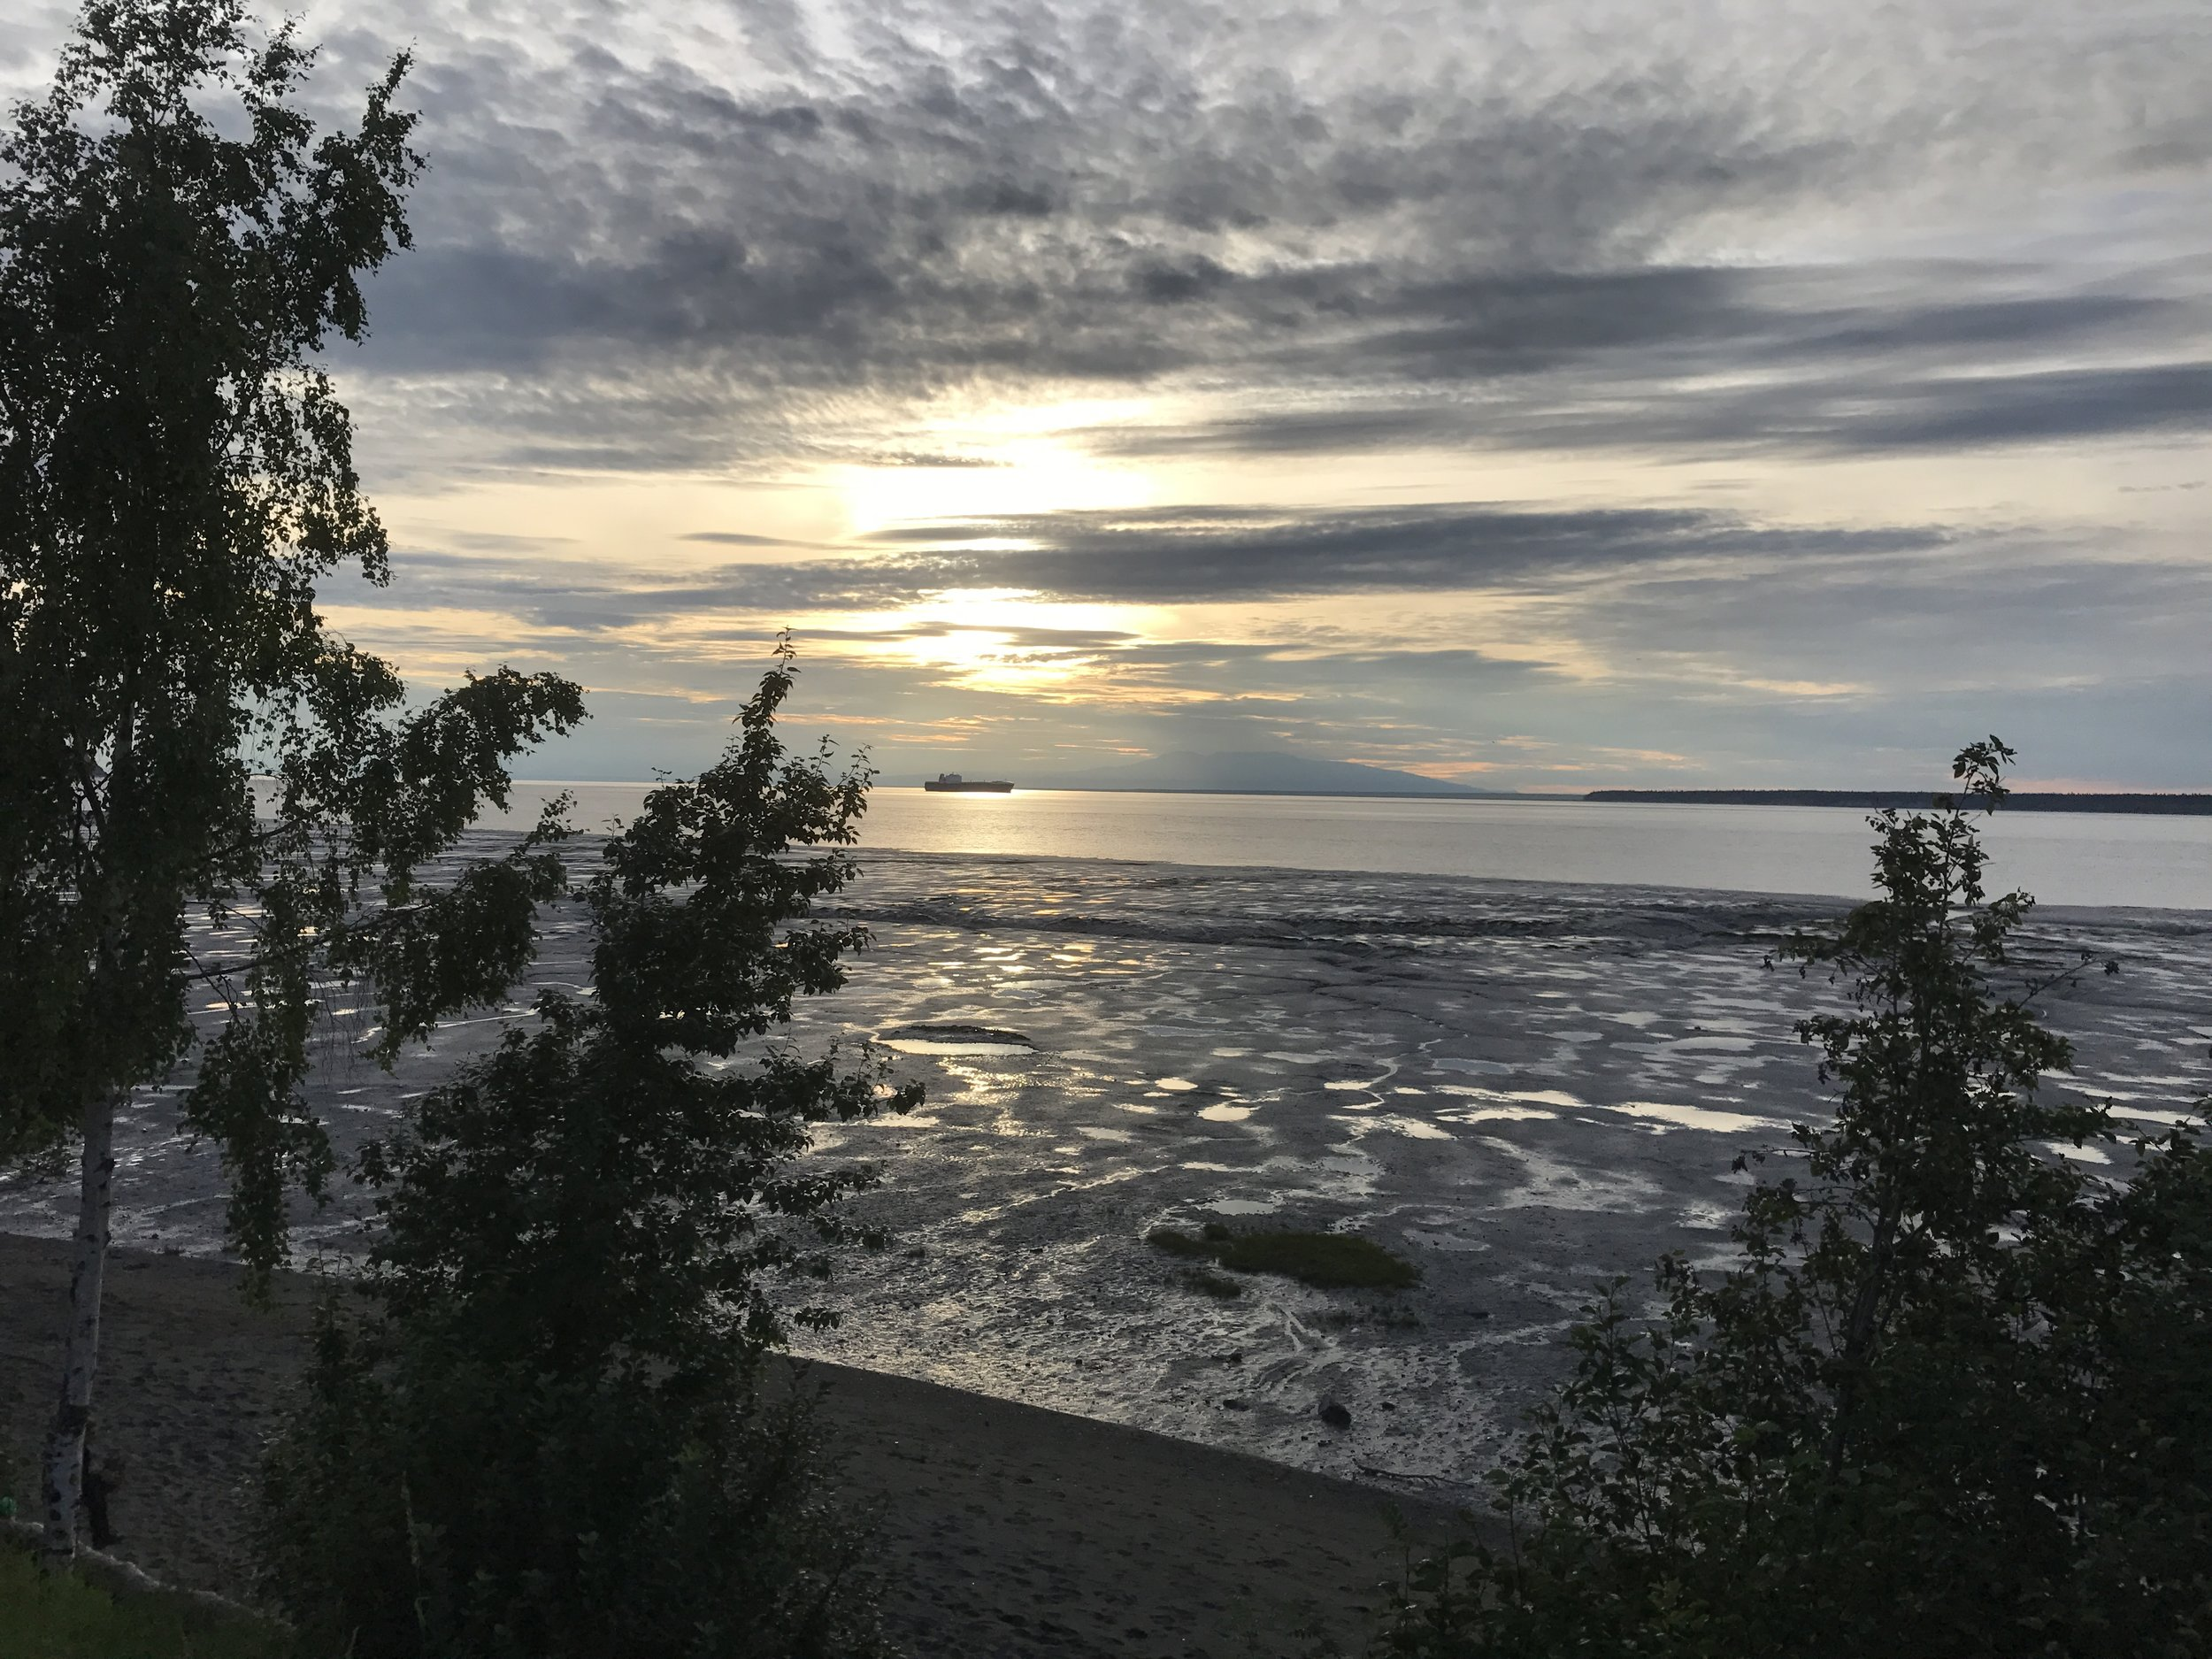 The Cook Inlet at sunset.